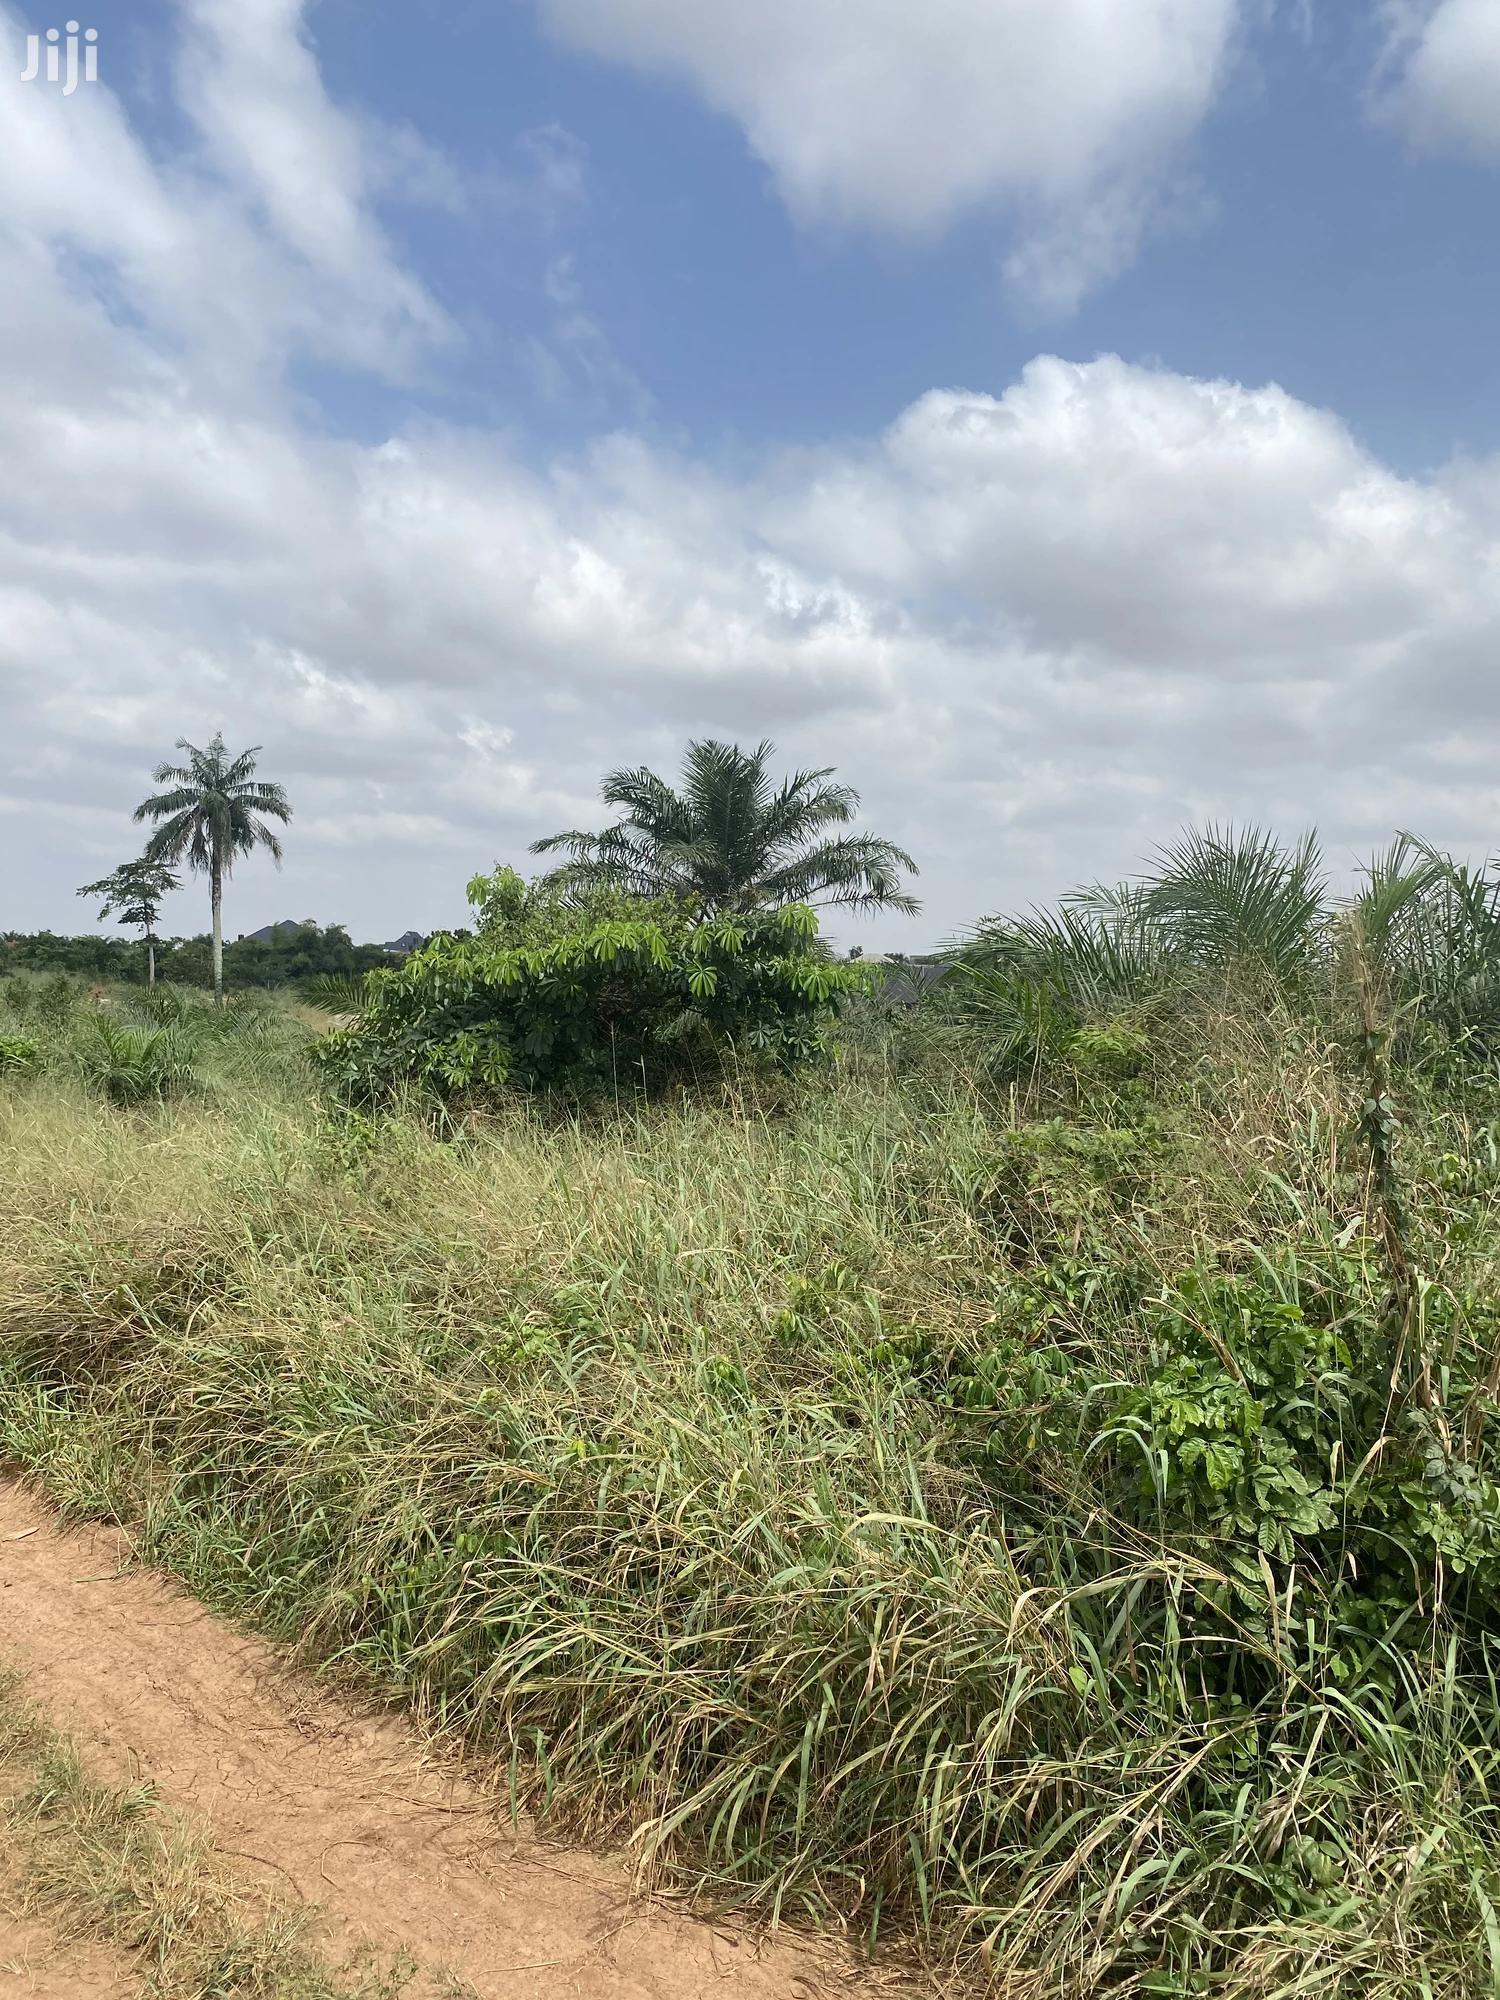 Affordable Leased Land at Ahenema Kokoben New Site . | Land & Plots for Rent for sale in Atwima Kwanwoma, Ashanti, Ghana